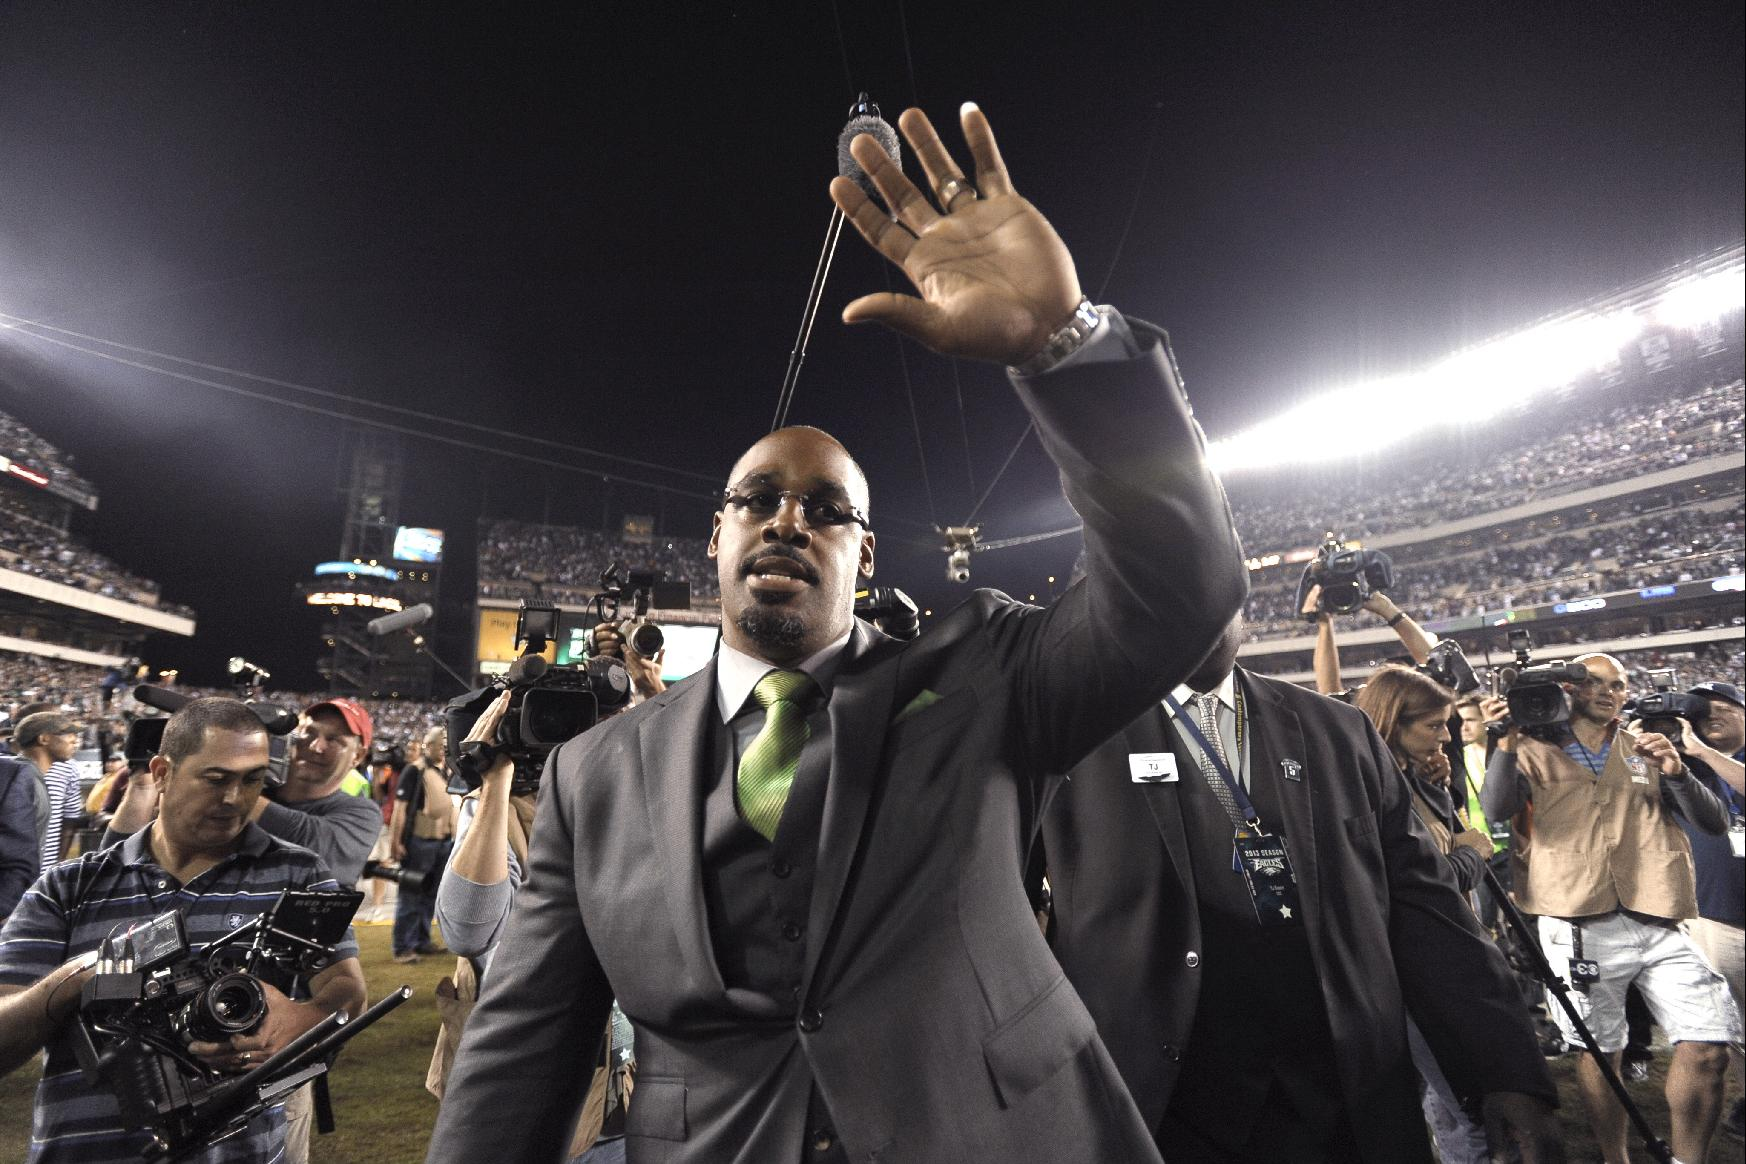 Former Philadelphia Eagles quarterback Donovan McNabb waves to the crowd during halftime of an NFL football game between the Eagles and the Kansas City Chiefs, Thursday, Sept. 19, 2013, in Philadelphia. The Eagles retired McNabb's jersey number at halftime